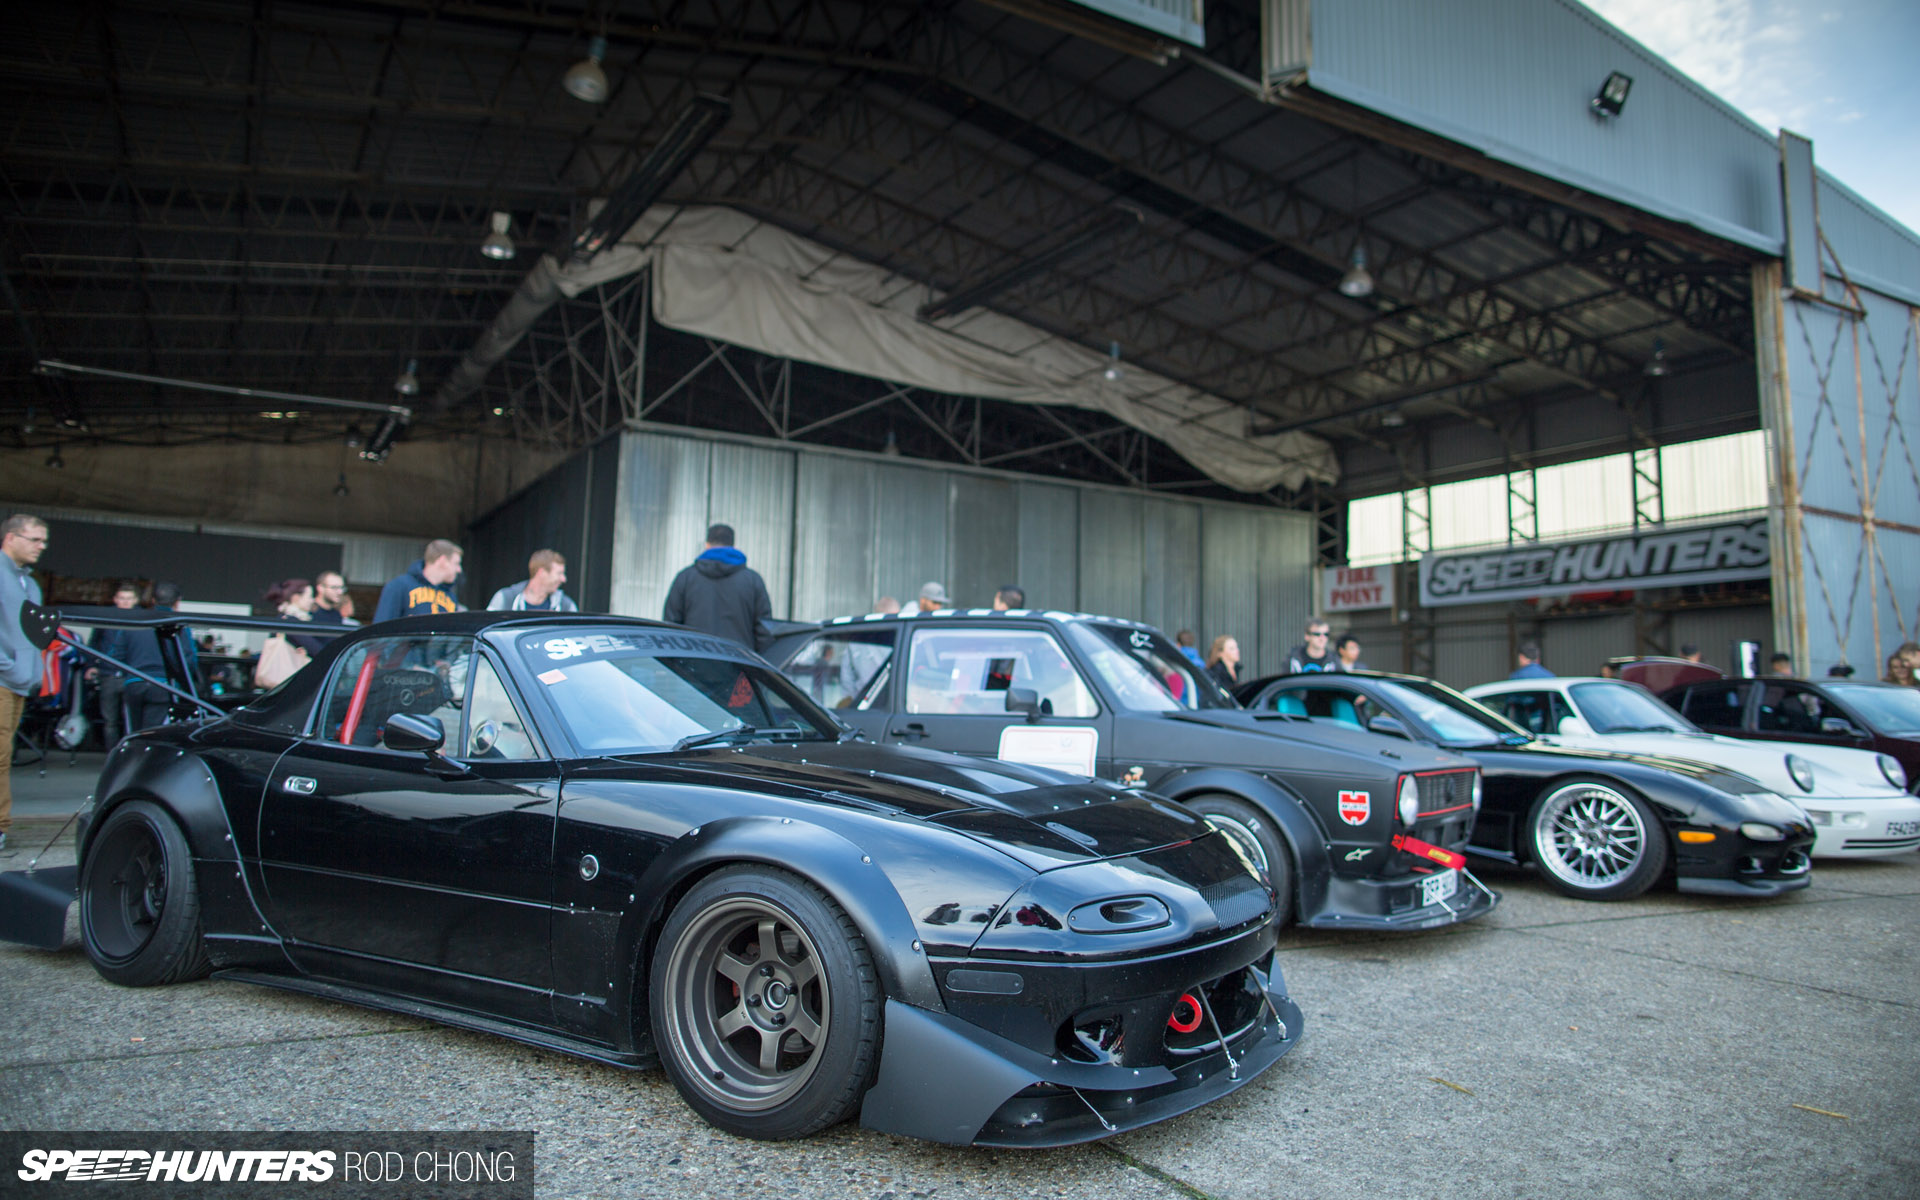 Players_Show_Essex_Speedhunters_Hangar-004.jpg